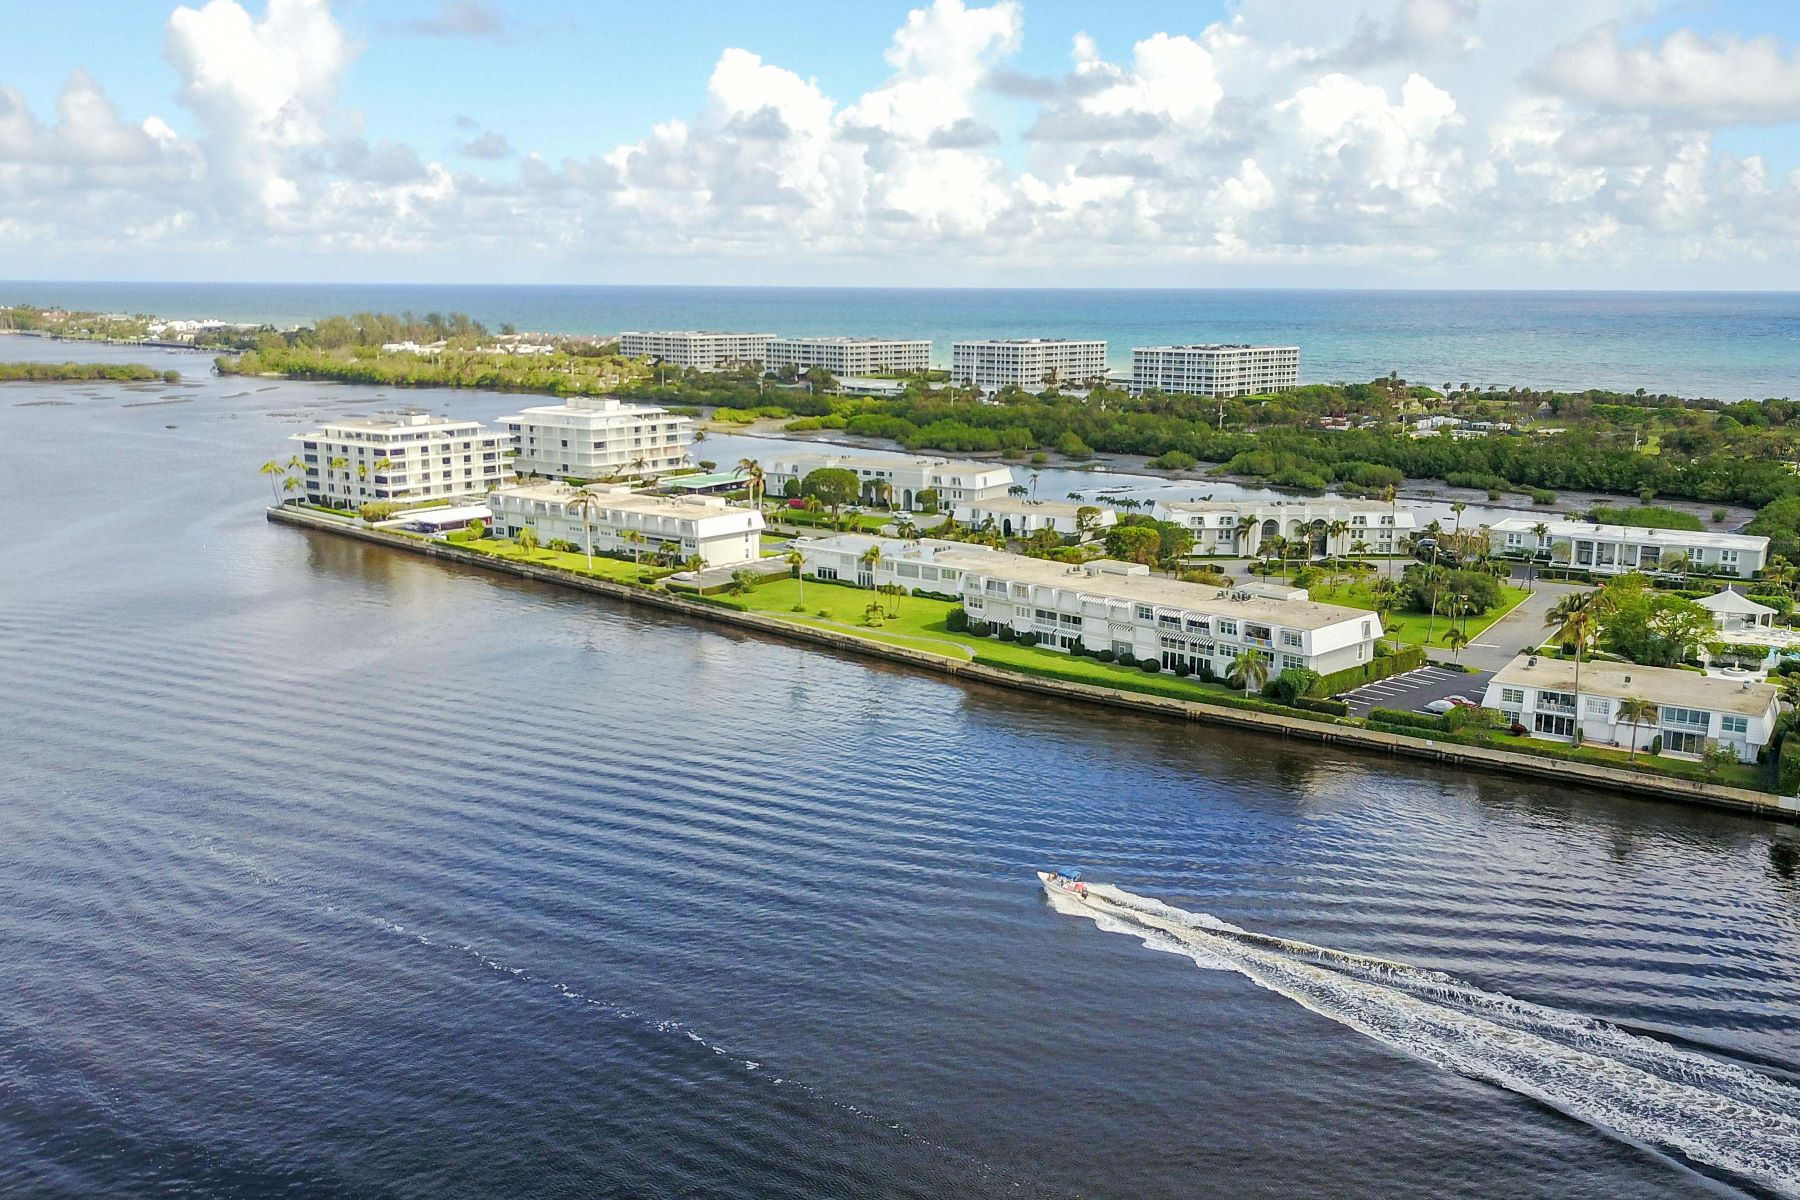 Additional photo for property listing at Ibis Isle Condo 2180 Ibis Isle Rd # 2 Palm Beach, Флорида 33480 Соединенные Штаты